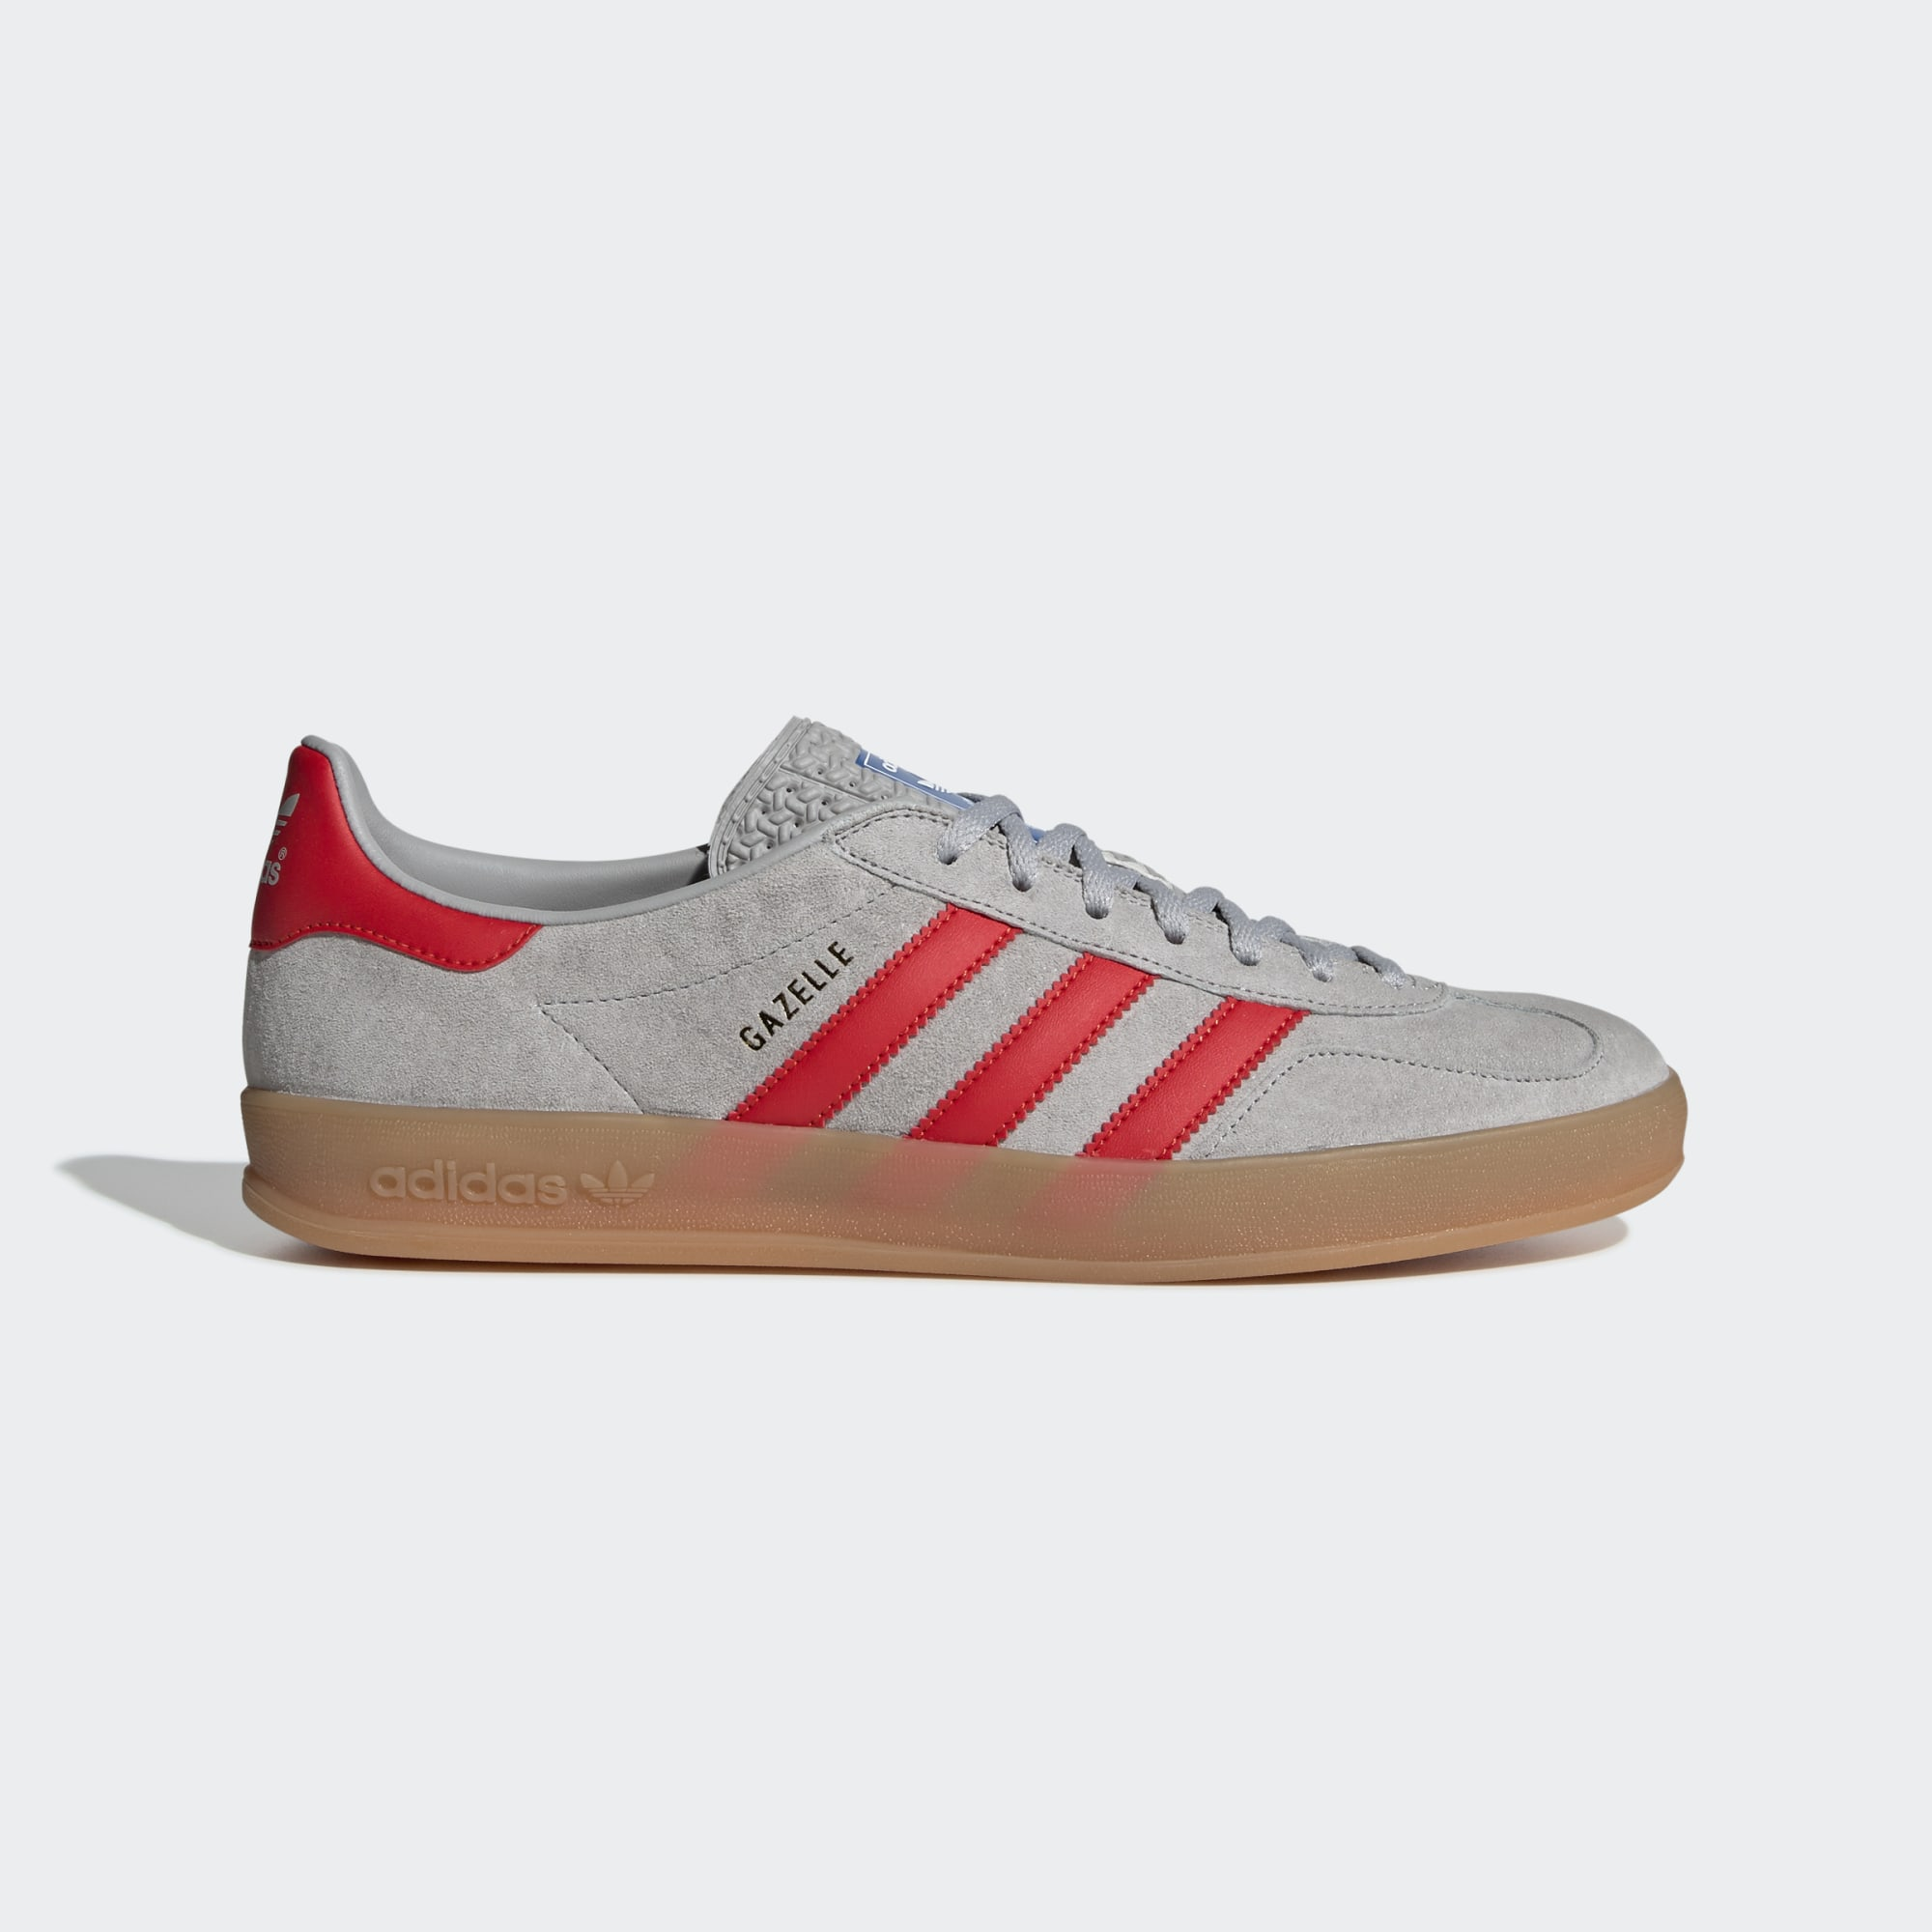 Adidas Gazelle Indoor Shoes - Grey Two / Active Red / Bluebird